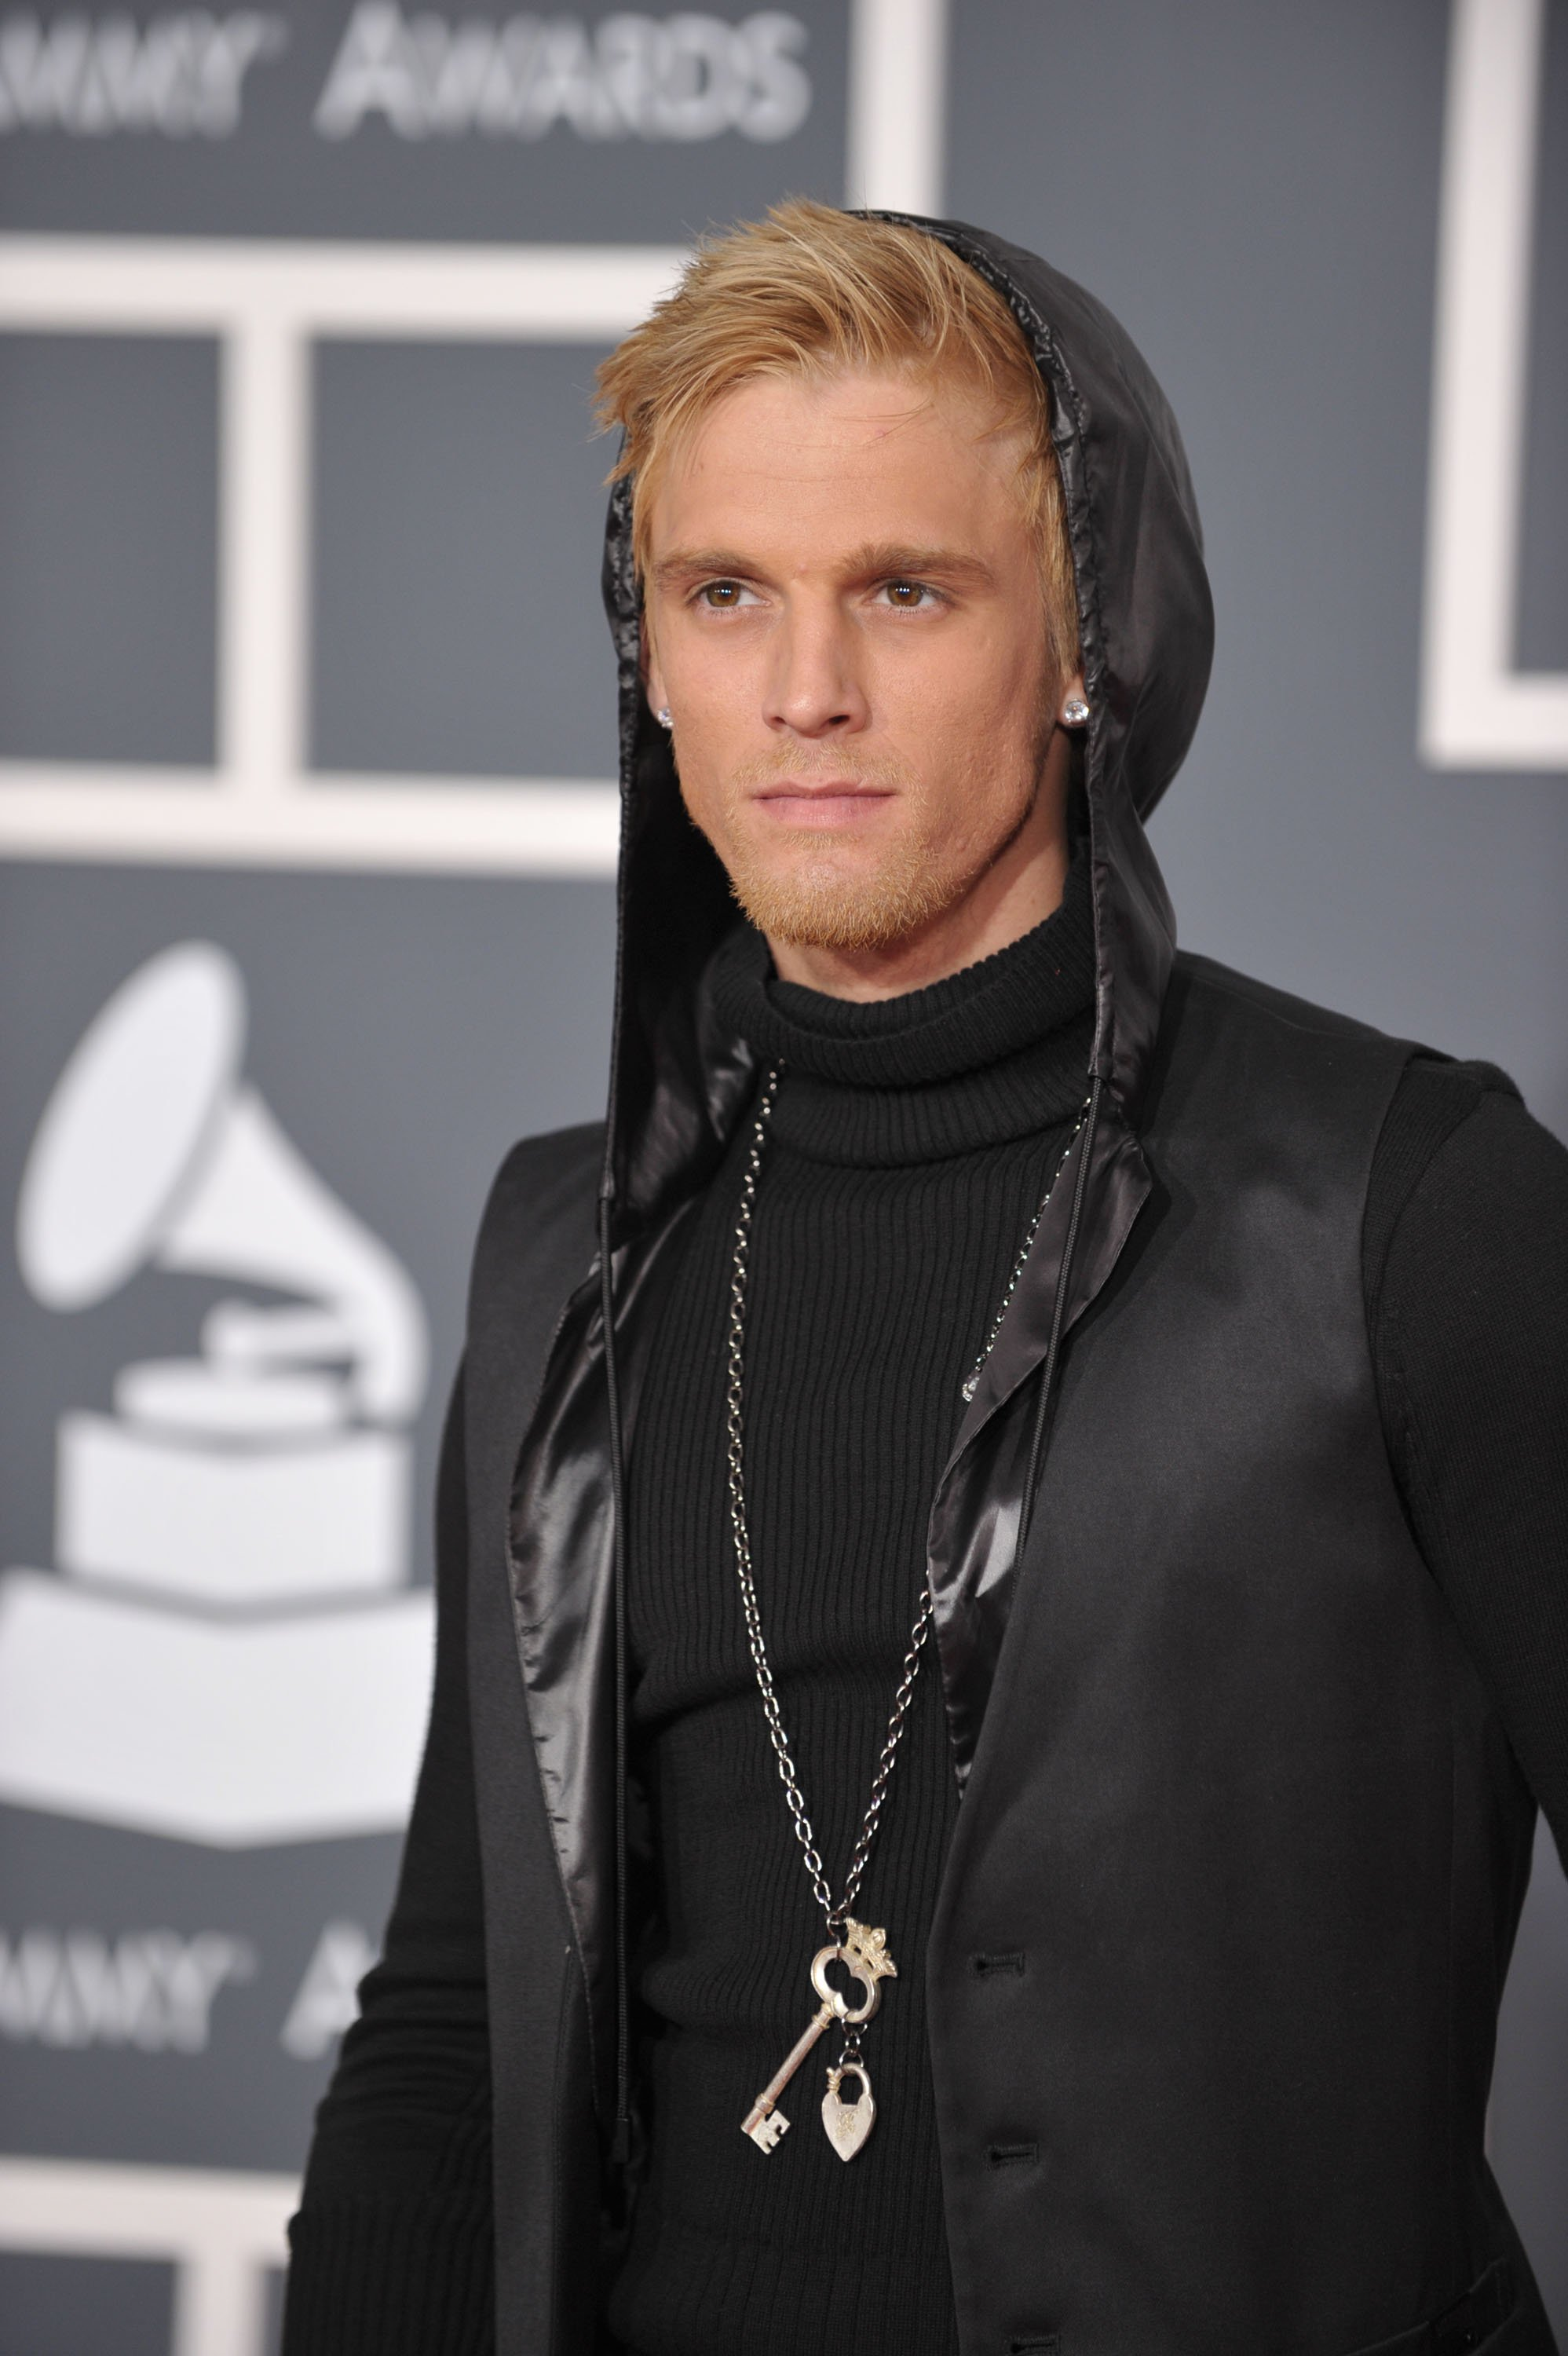 Aaron Carter arrives at the 52nd Annual GRAMMY Awards held at Staples Center on January 31, 2010 in Los Angeles, California. | Photo: GettyImages